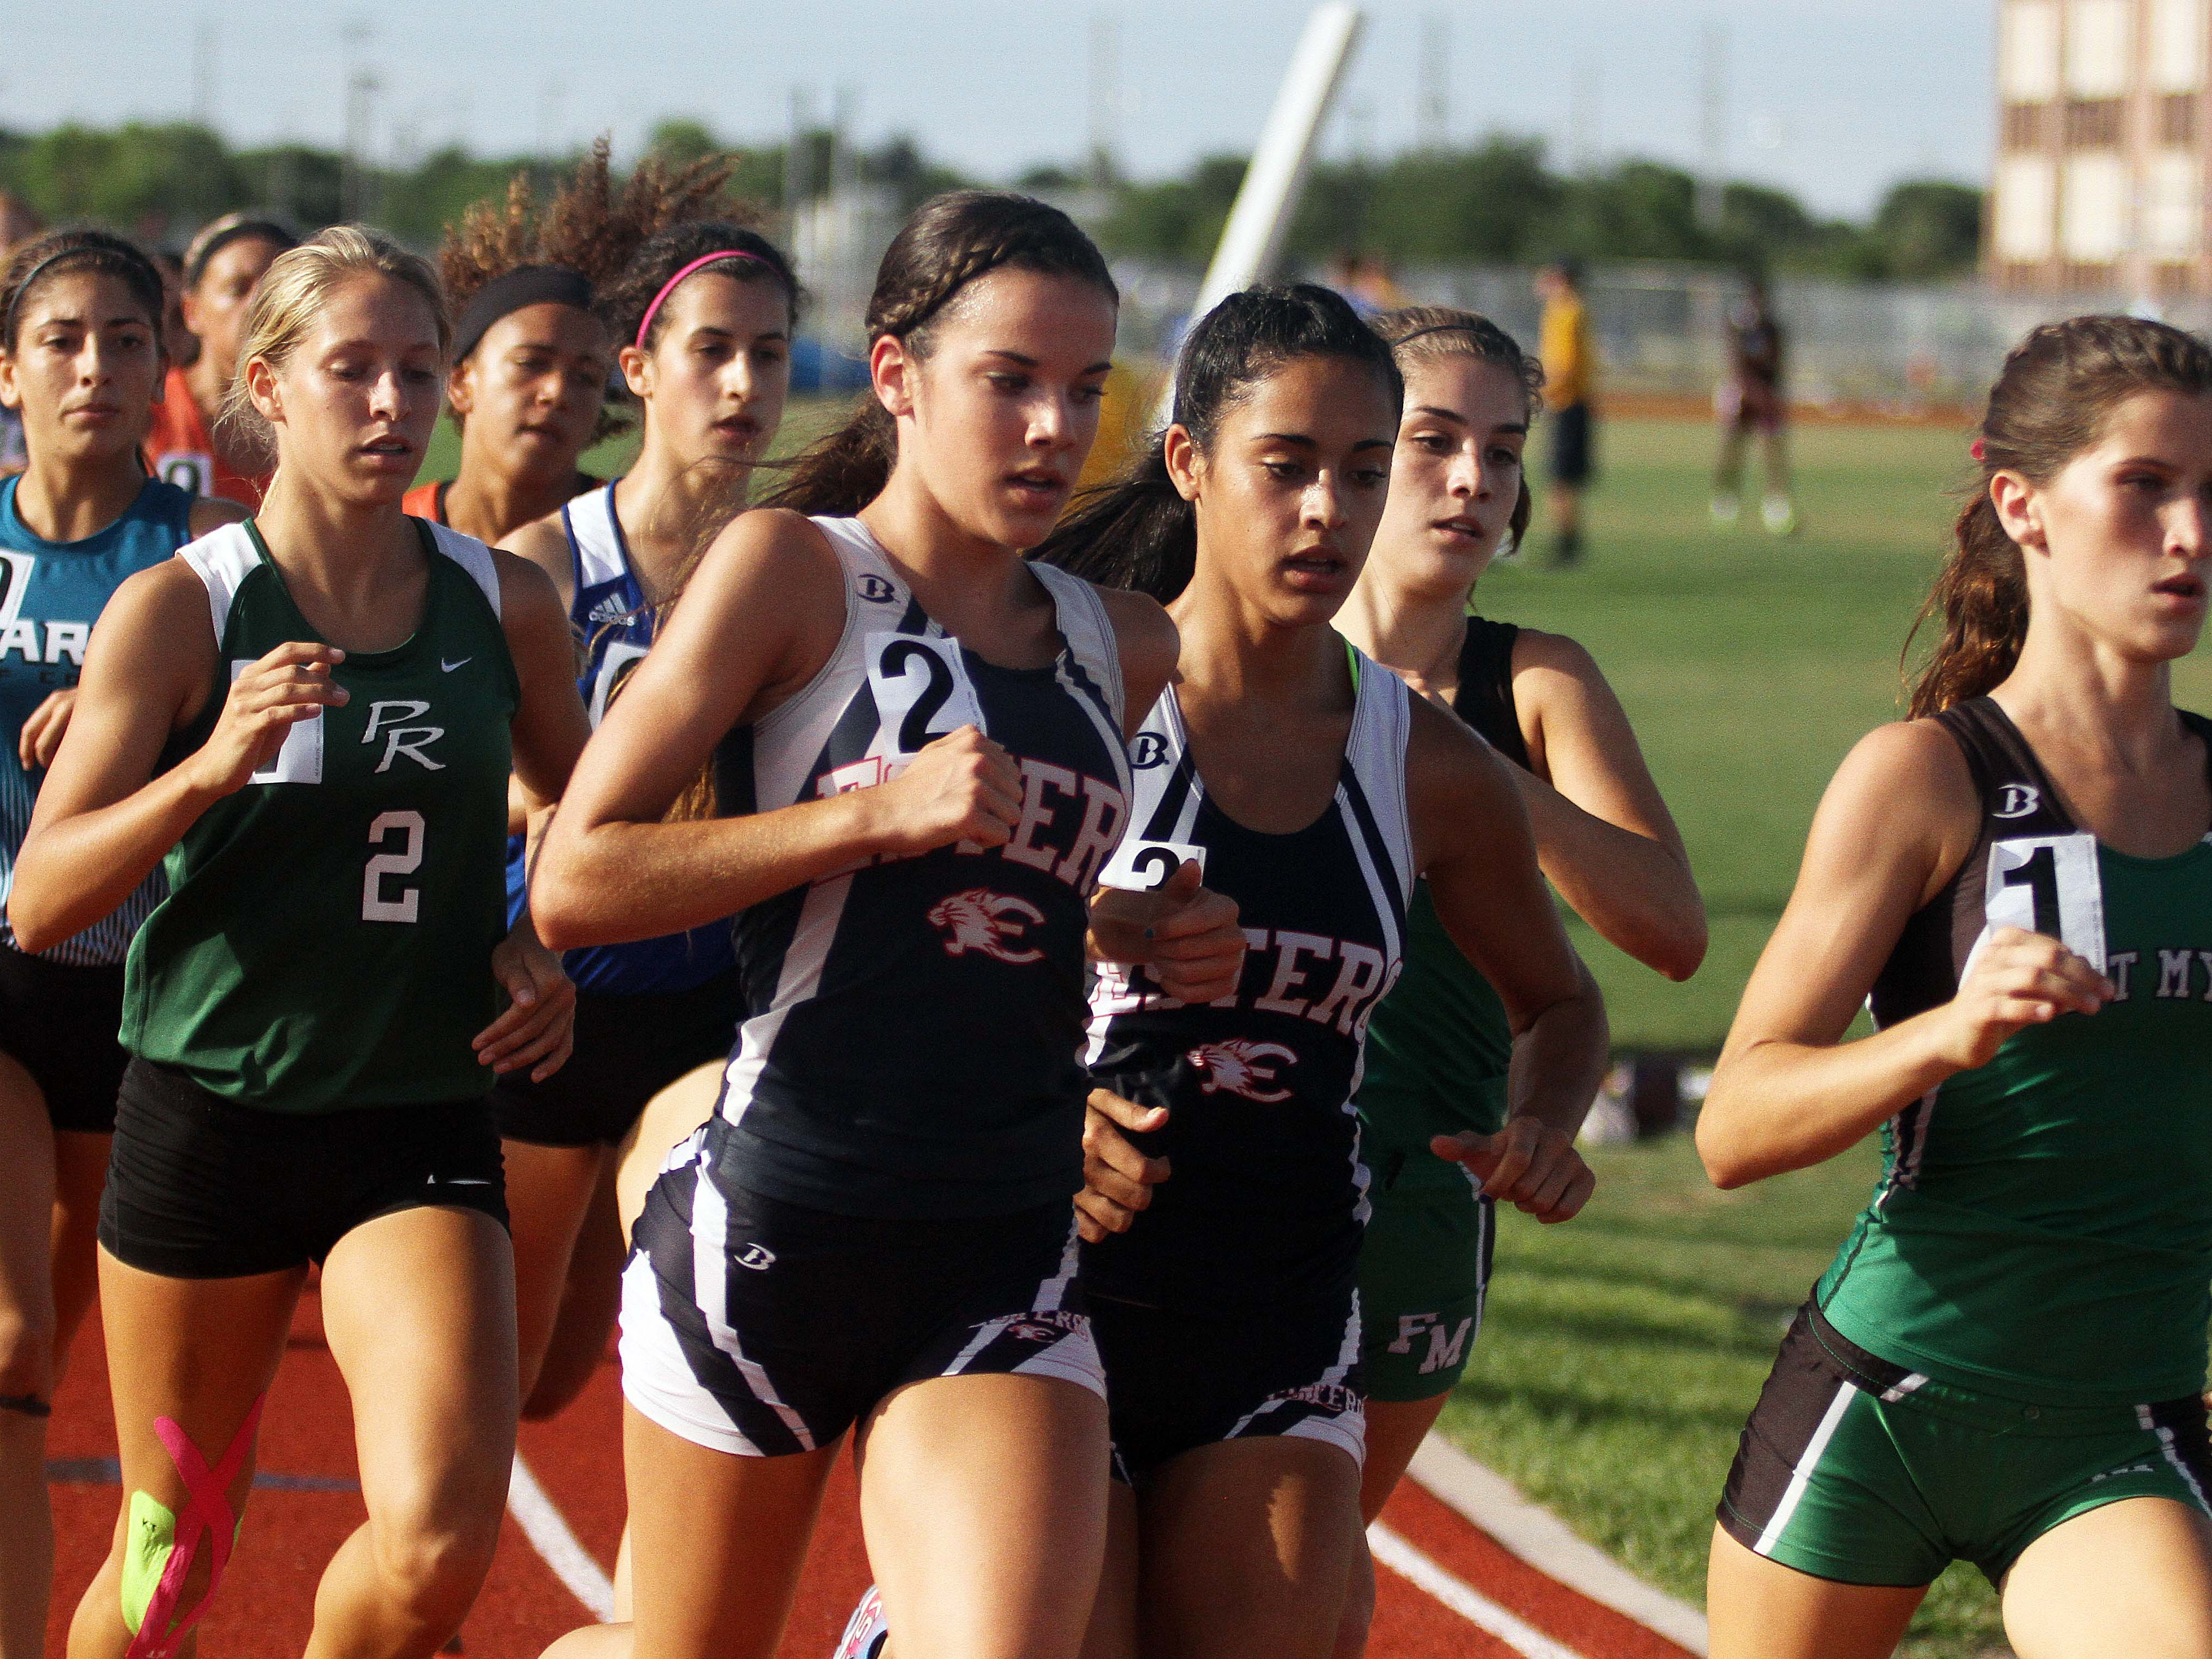 Fort Myers' Kristlin Gear, right, leads the pack during the girls' 1,600-meter run Thursday at the Region 3A-3 track meet at Charlotte High School. Gear won the race in 5:12.04.